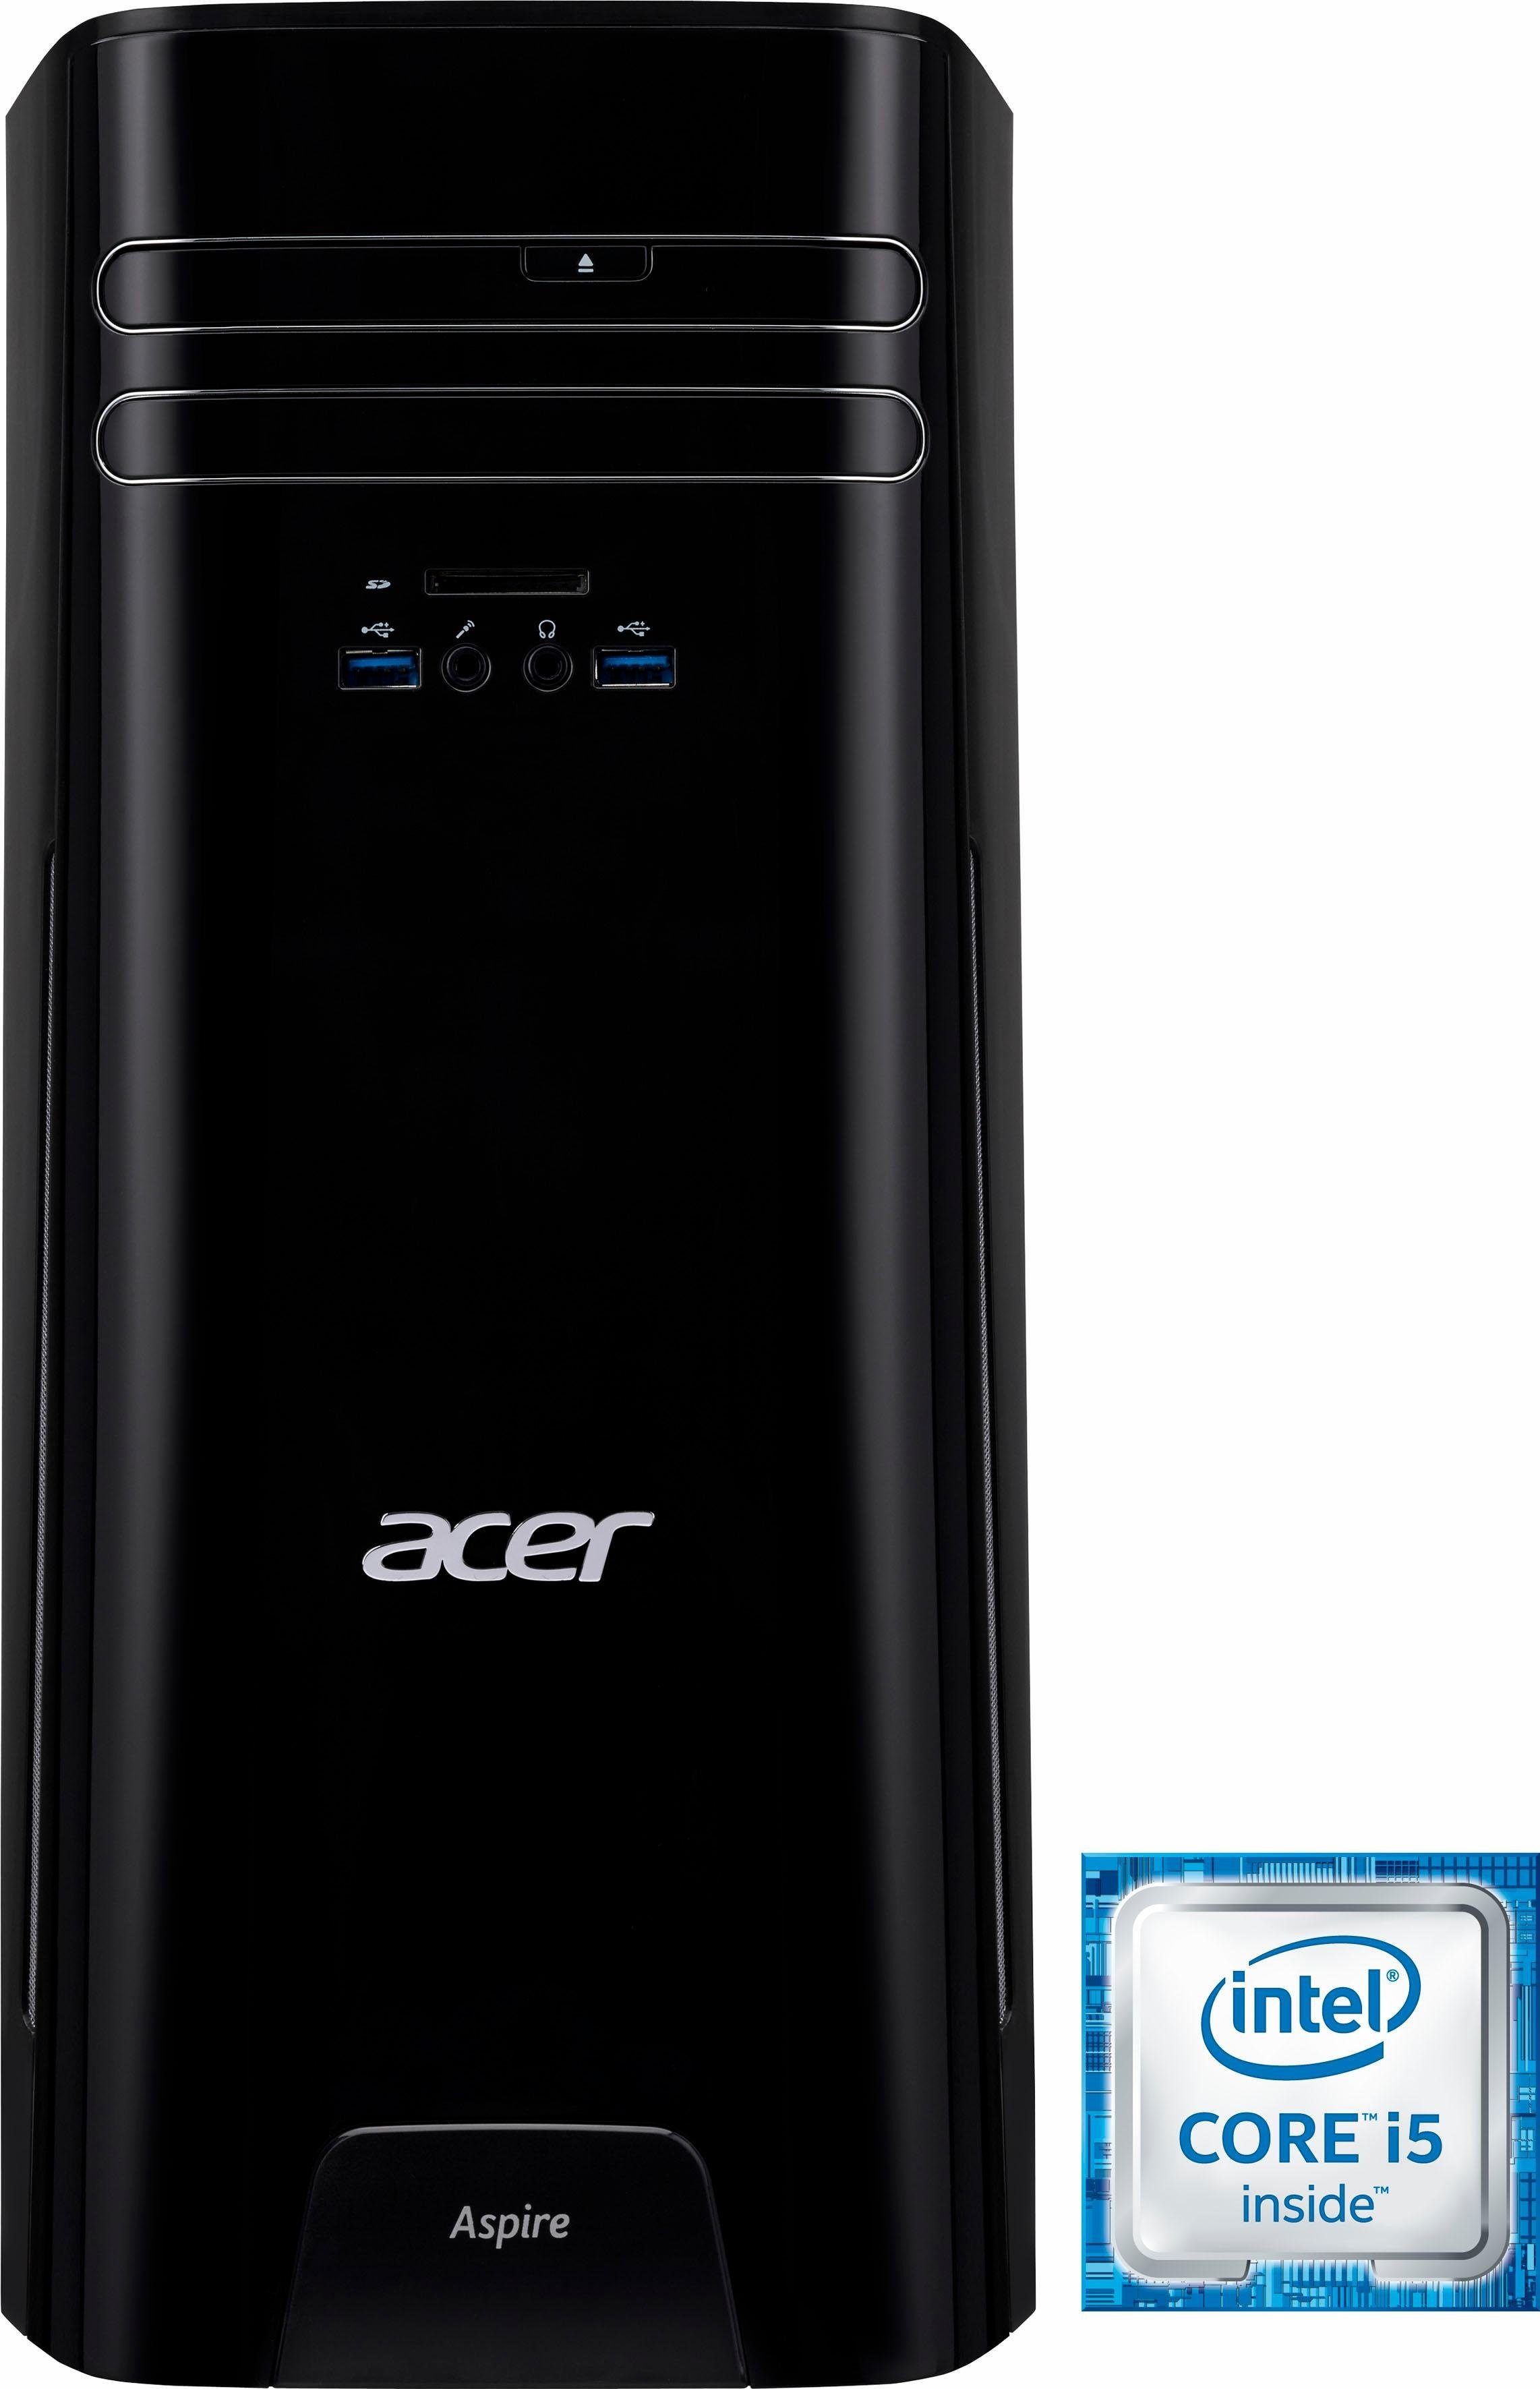 Acer Aspire TC-780 PC, Intel® Core™ i5, 8192 MB DDR4, 2128 GB Speicher, NVIDIA Geforce GTX745